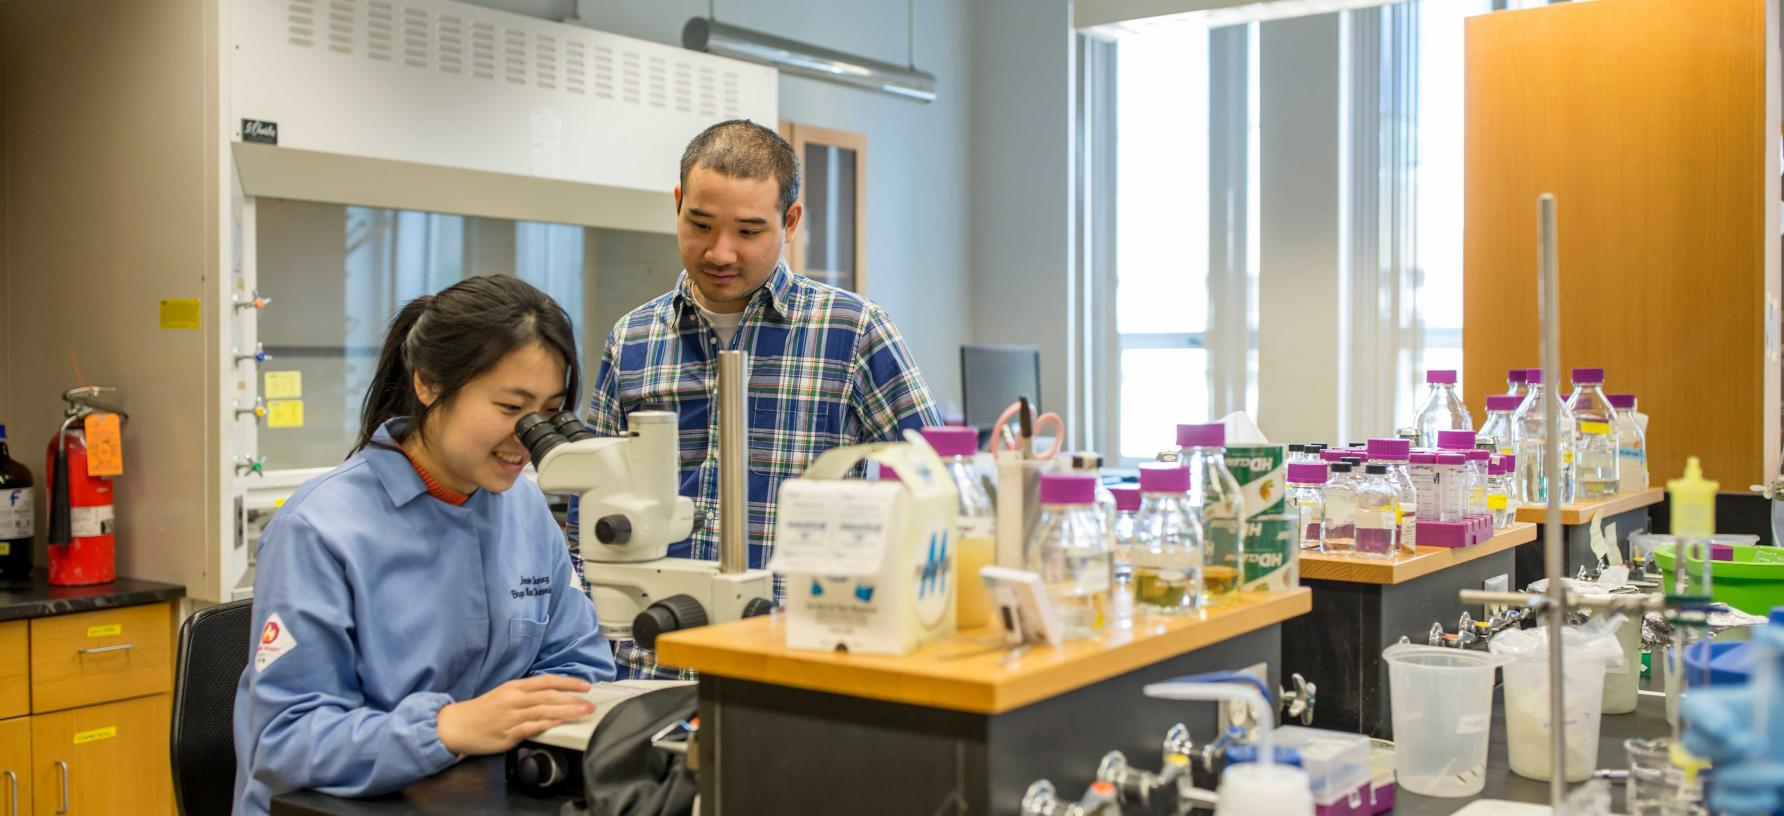 Jie Cheng '16 with Assistant Professor Yan Kung in a science lab